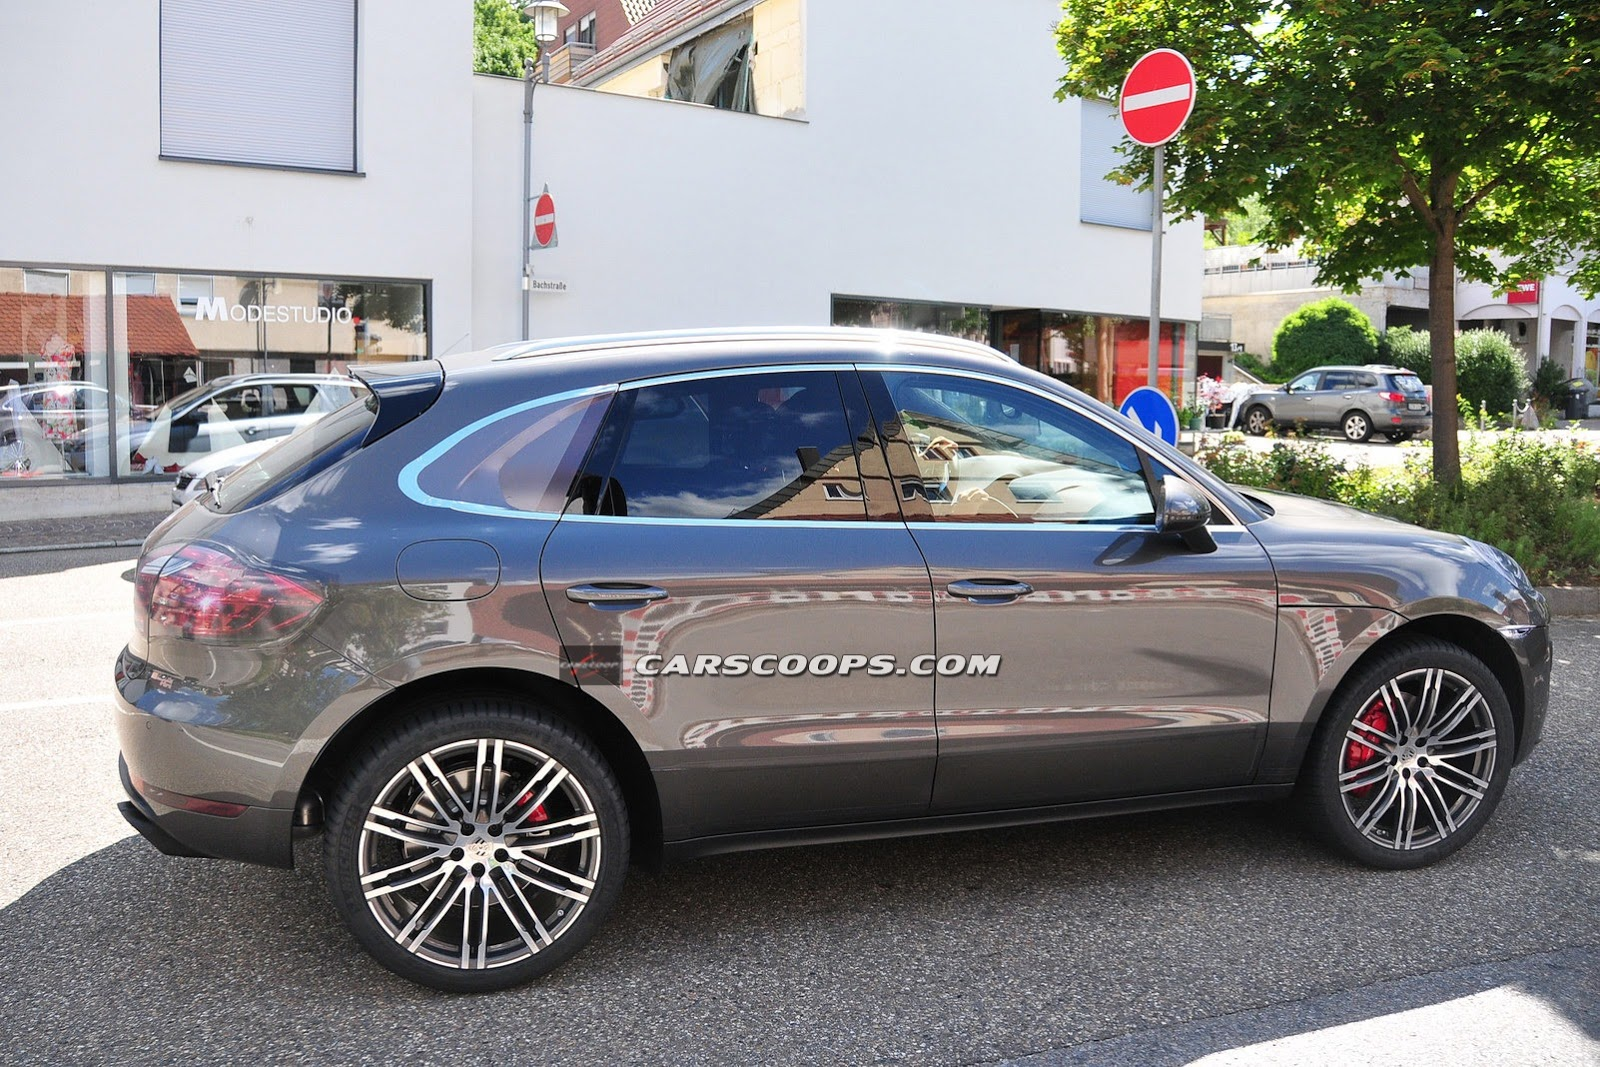 New-Porsche-Macan-Turbo-5-Carscoops[6]